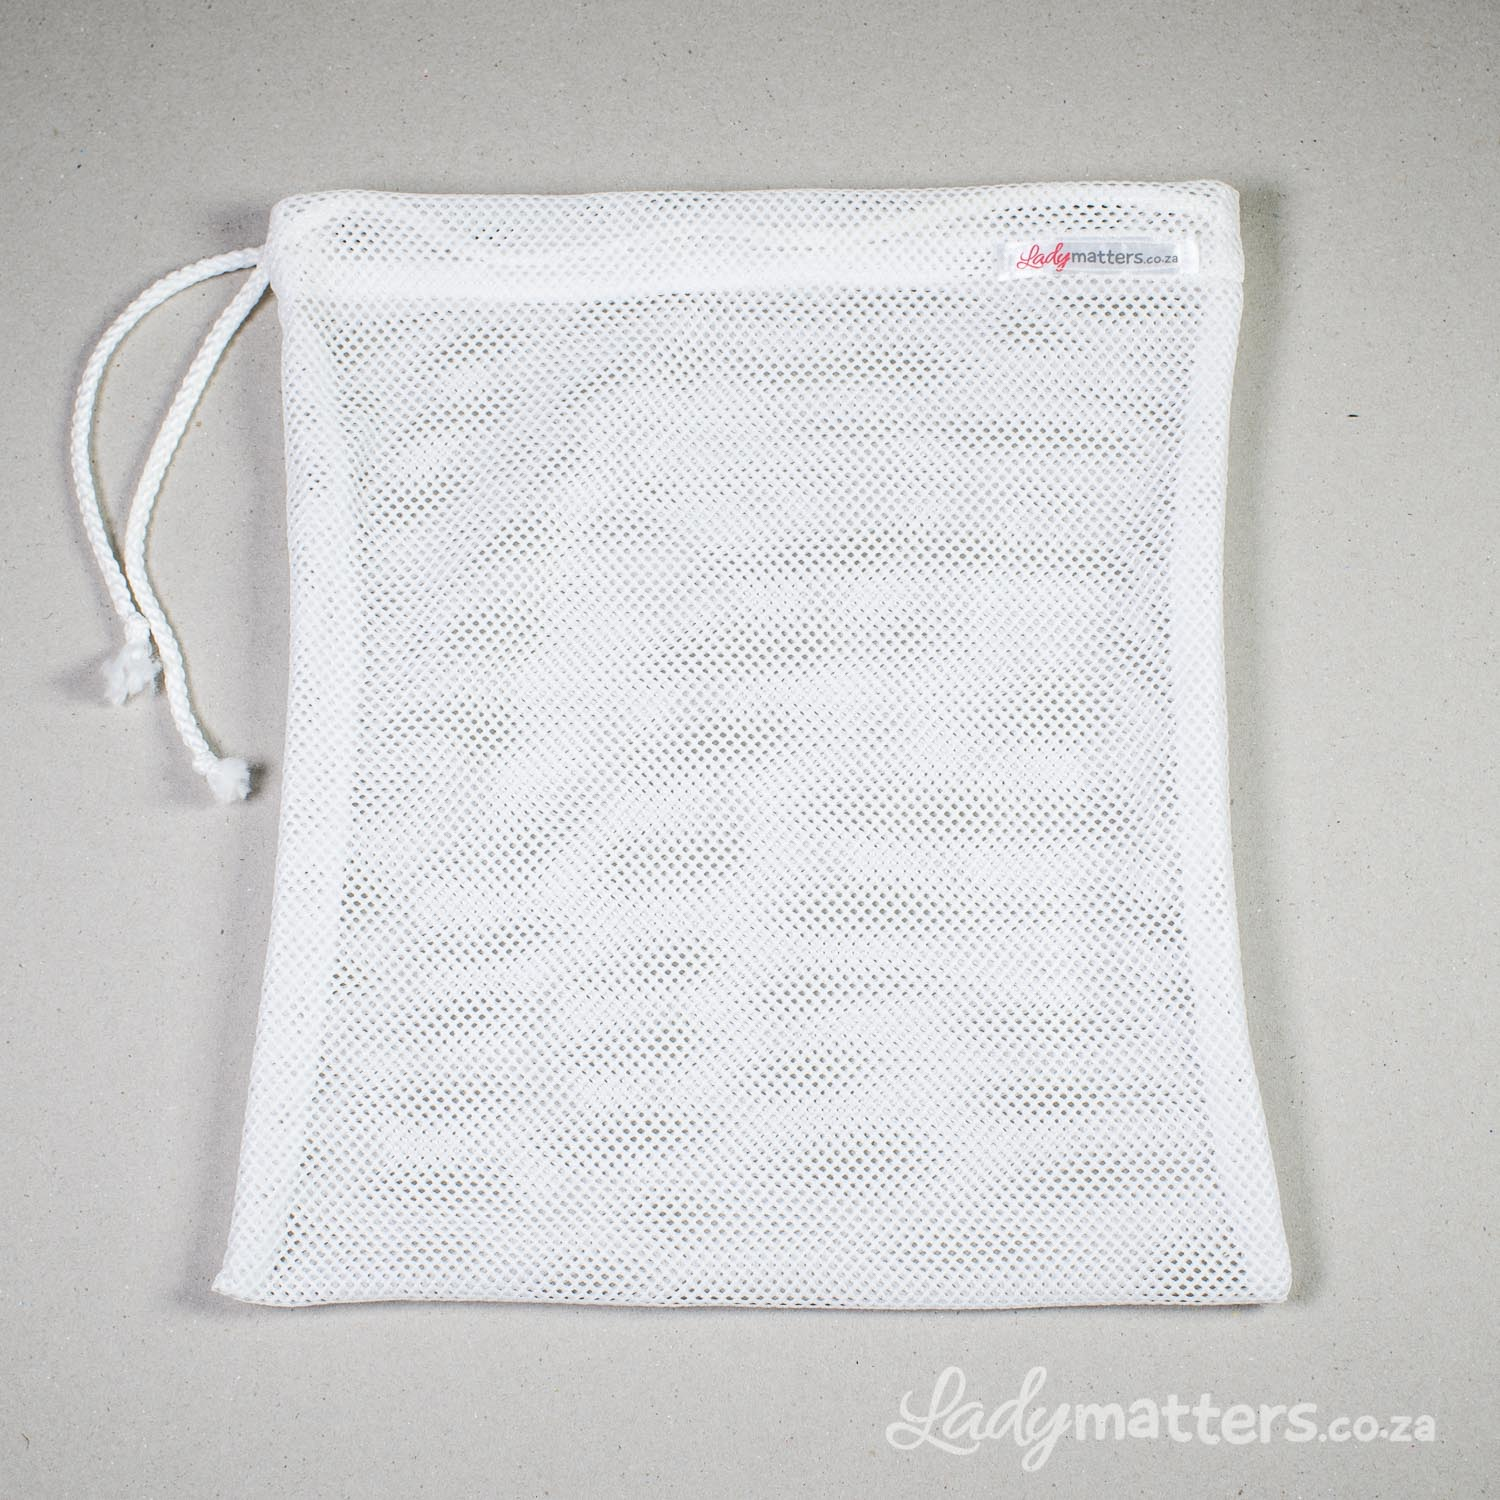 Mini Laundry Bag Mesh Laundry Bag Mini Matters